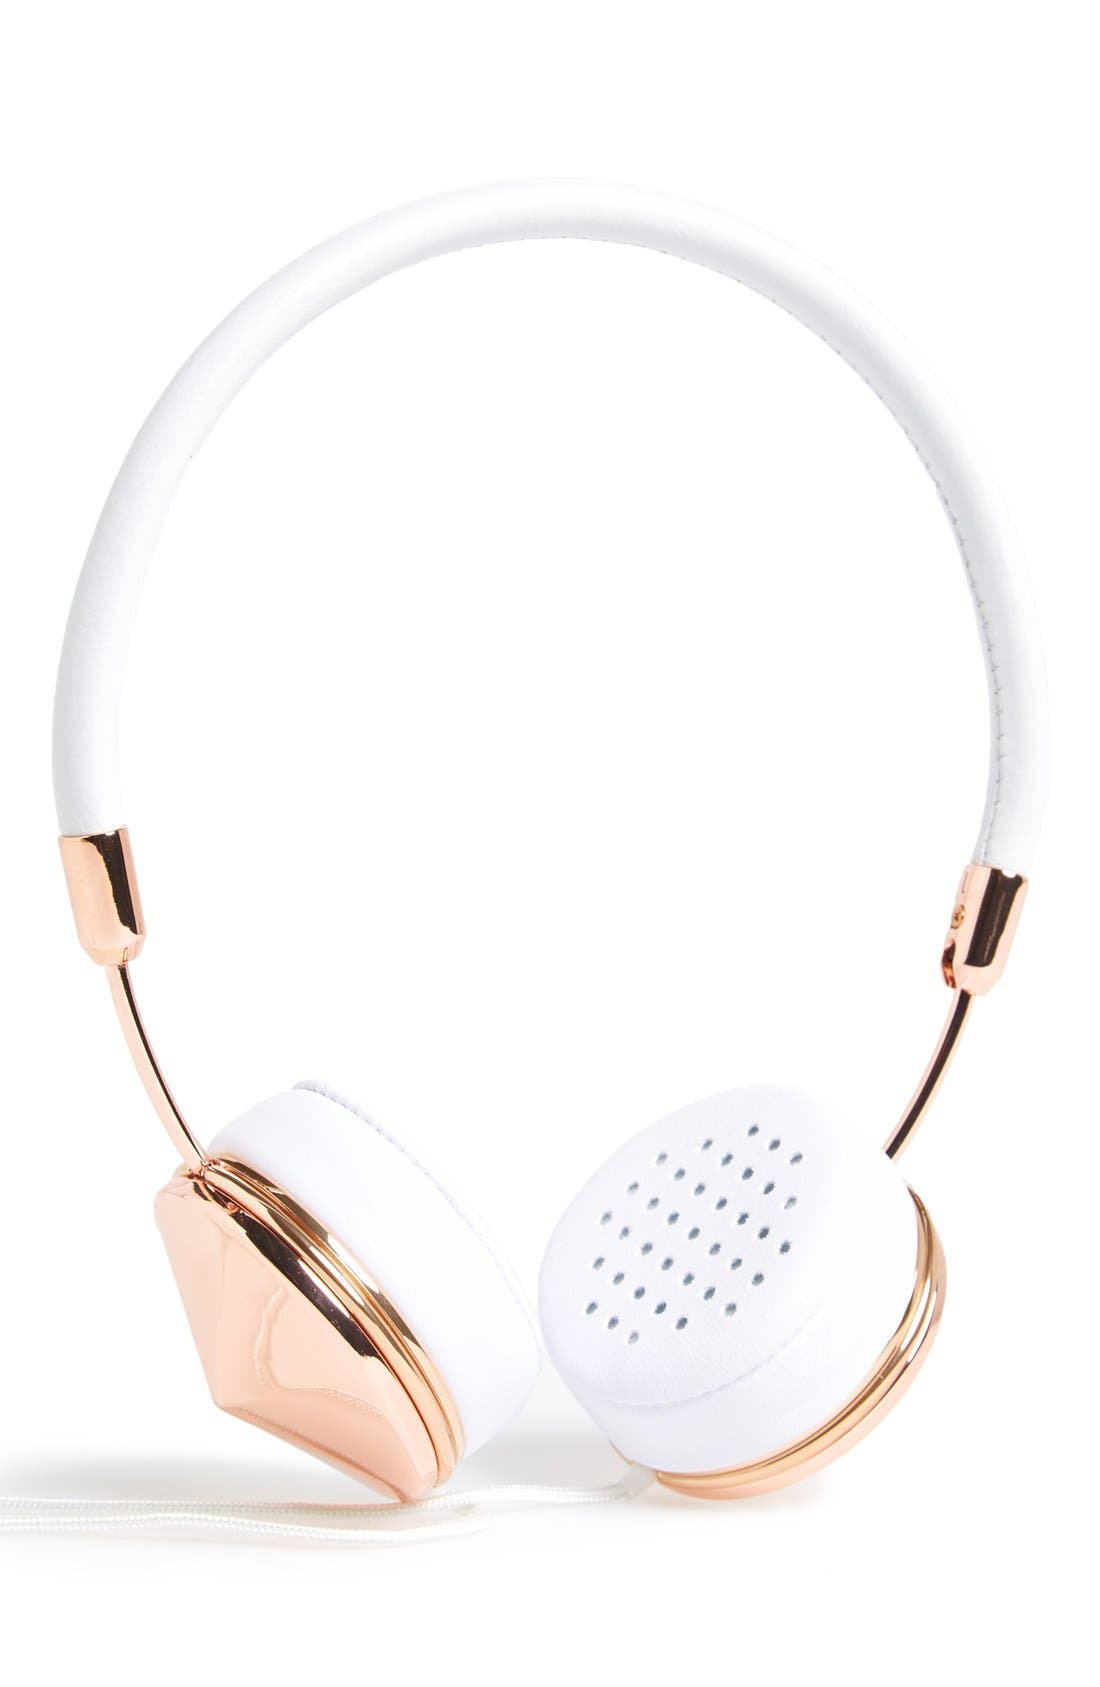 with Benefits 'Layla' Headphones,                         Main,                         color, 220